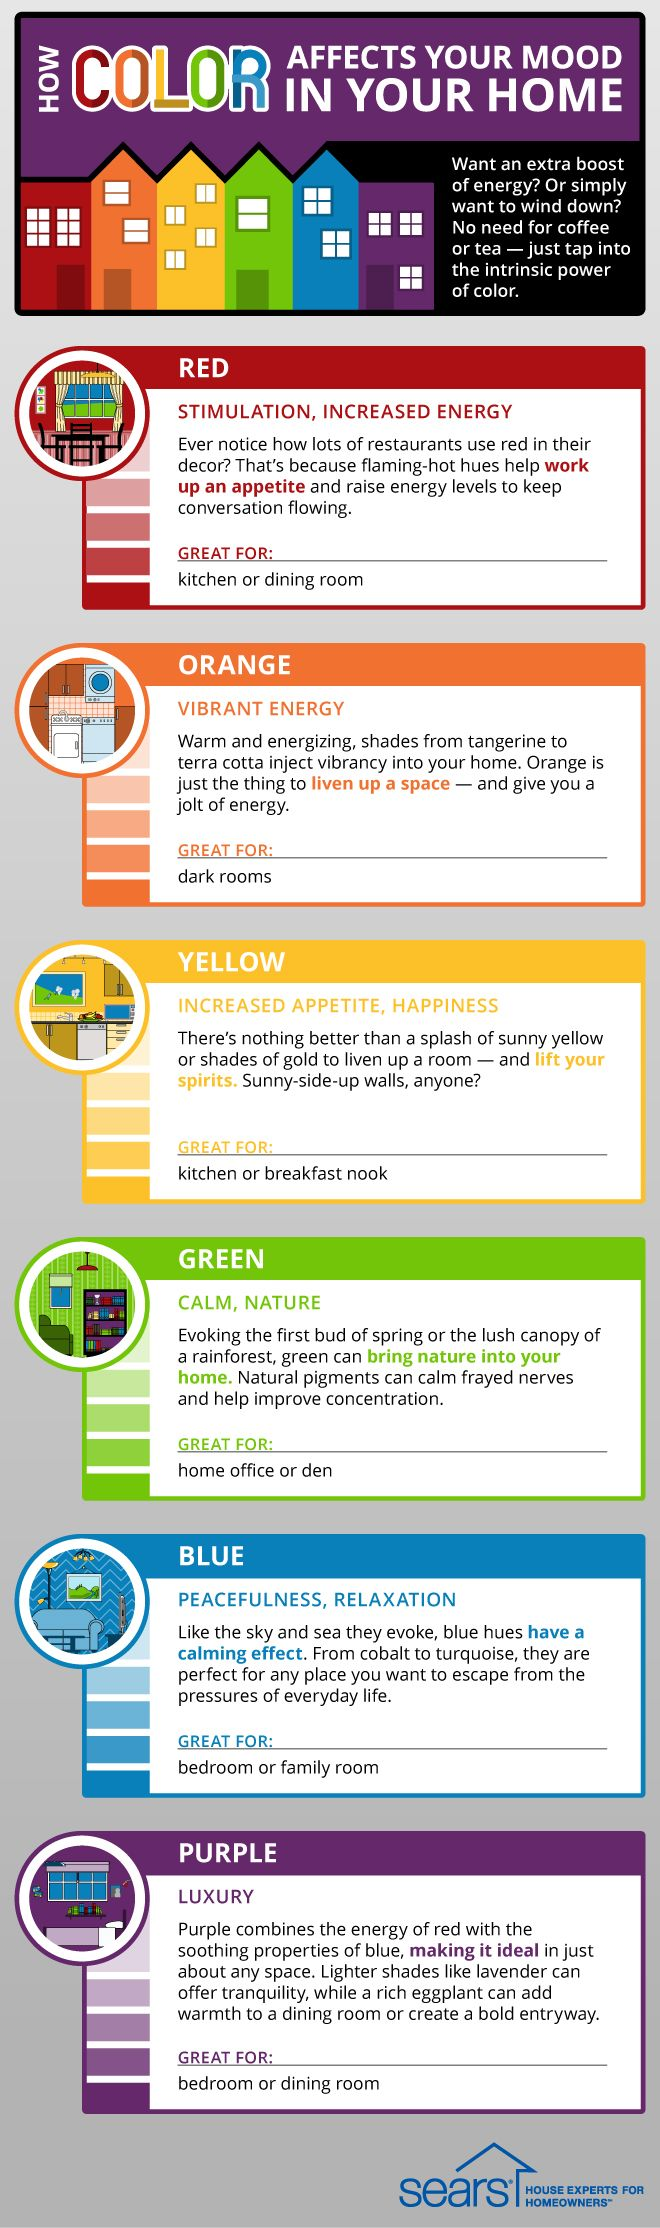 How Color Affects Your Mood In Your Home U2014 Did You Know That Color On Your